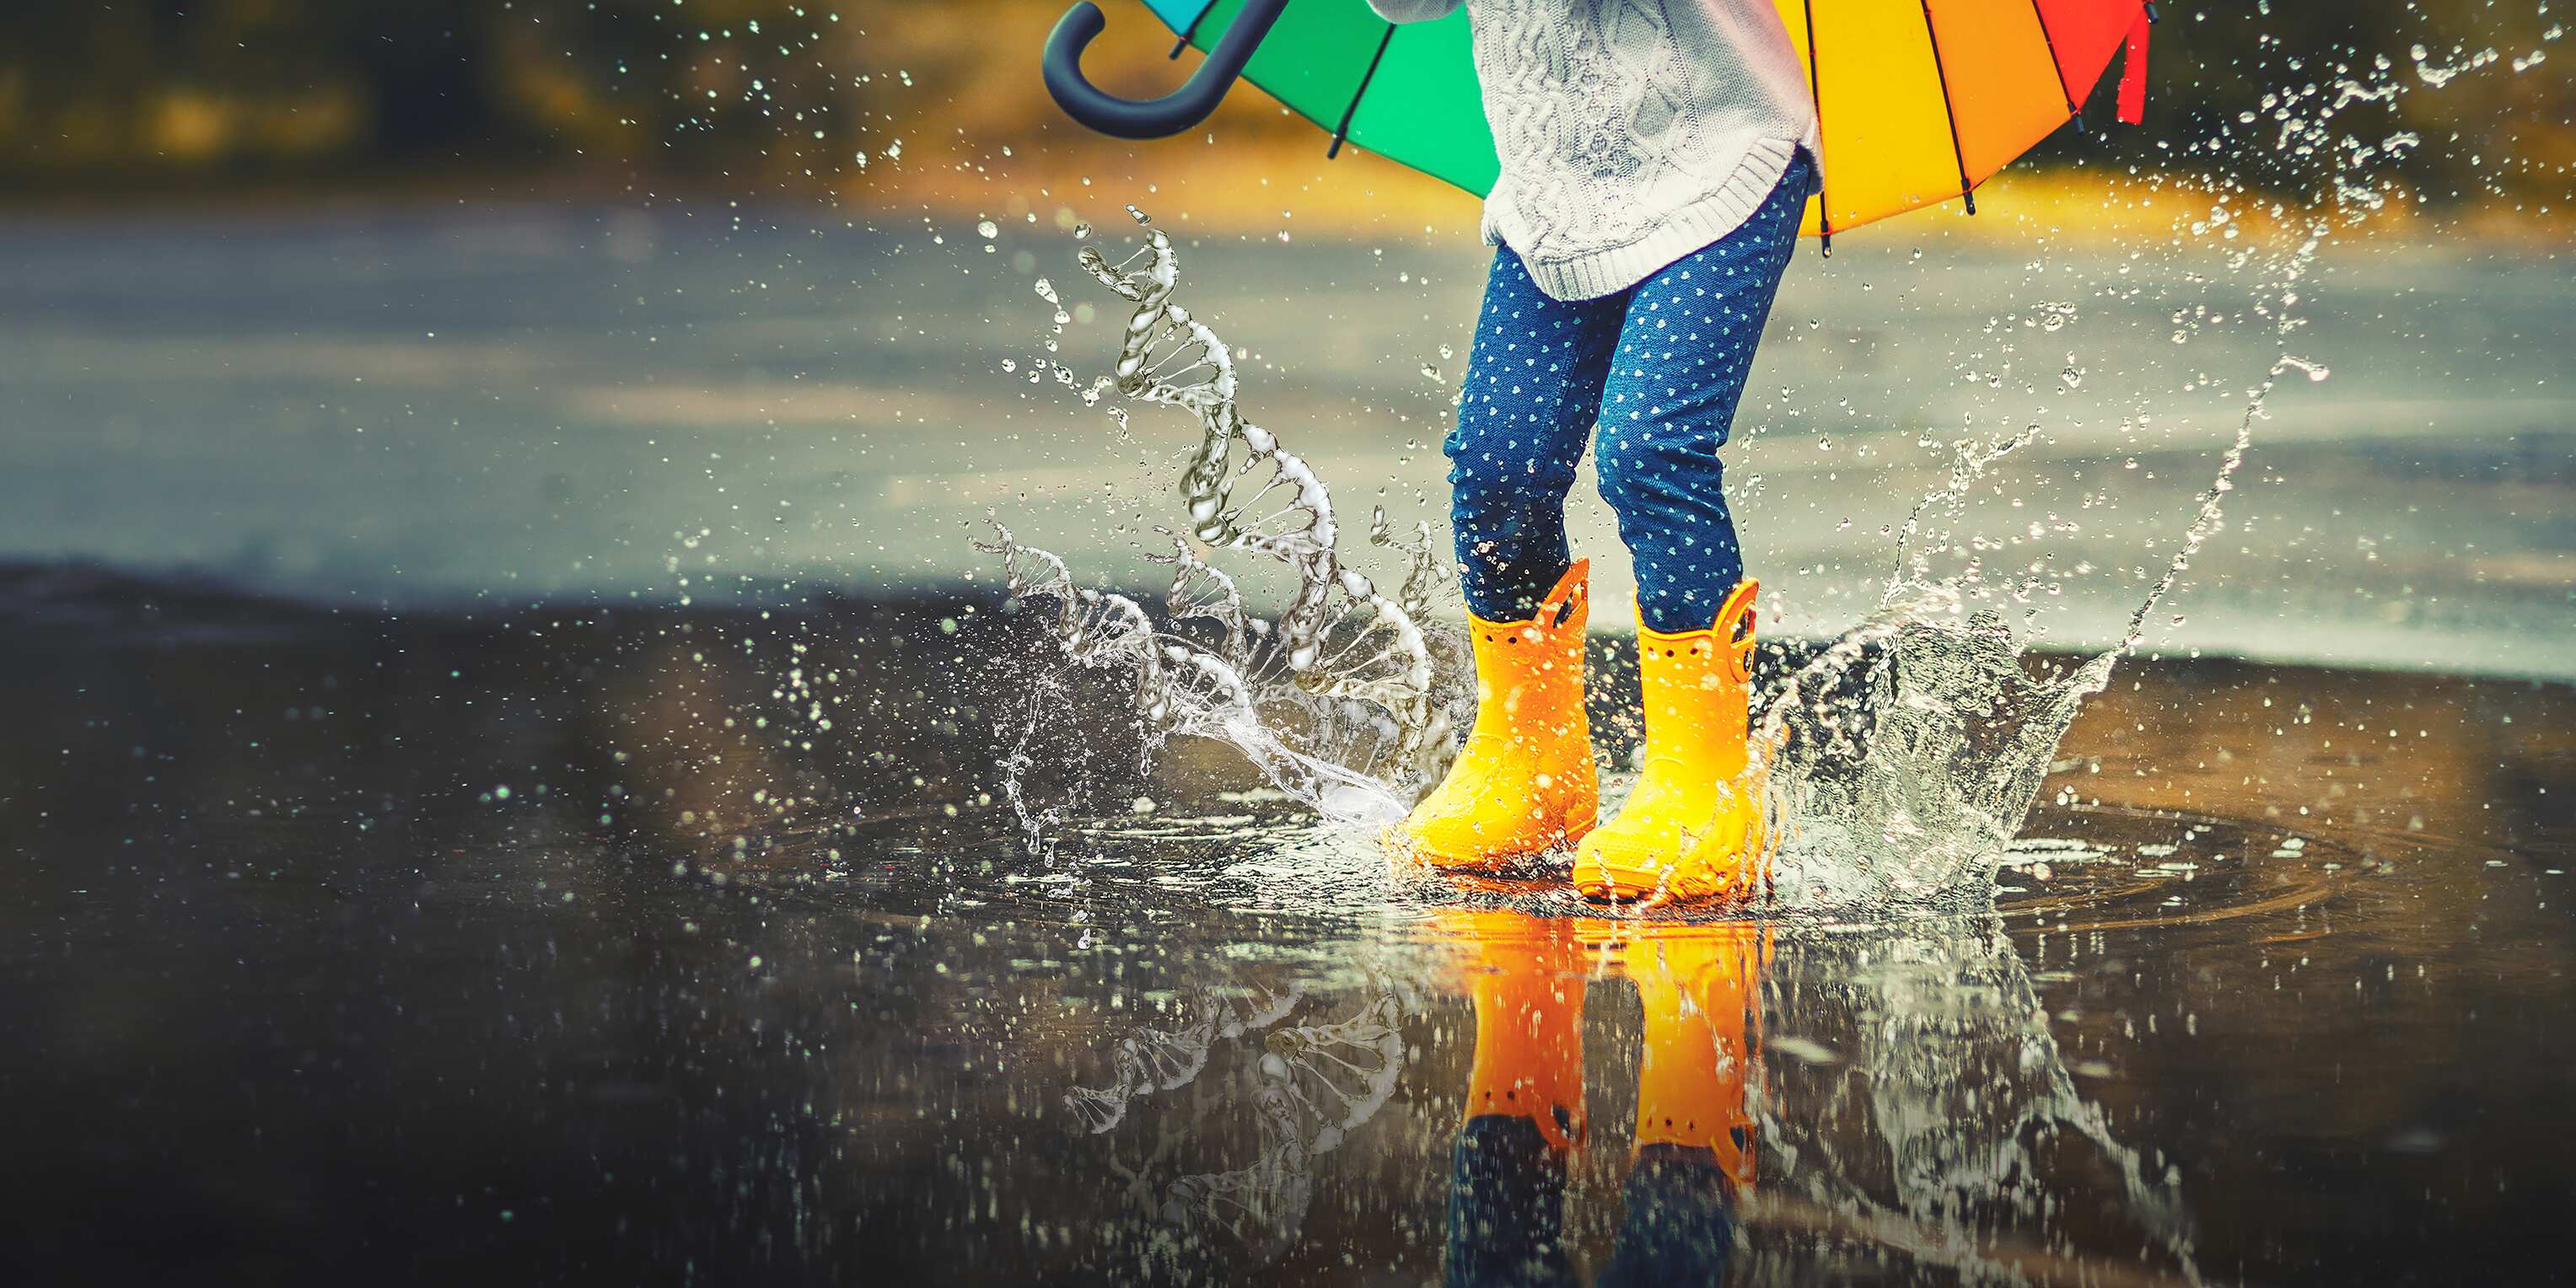 A child in yellow rain boots jumps into a puddle